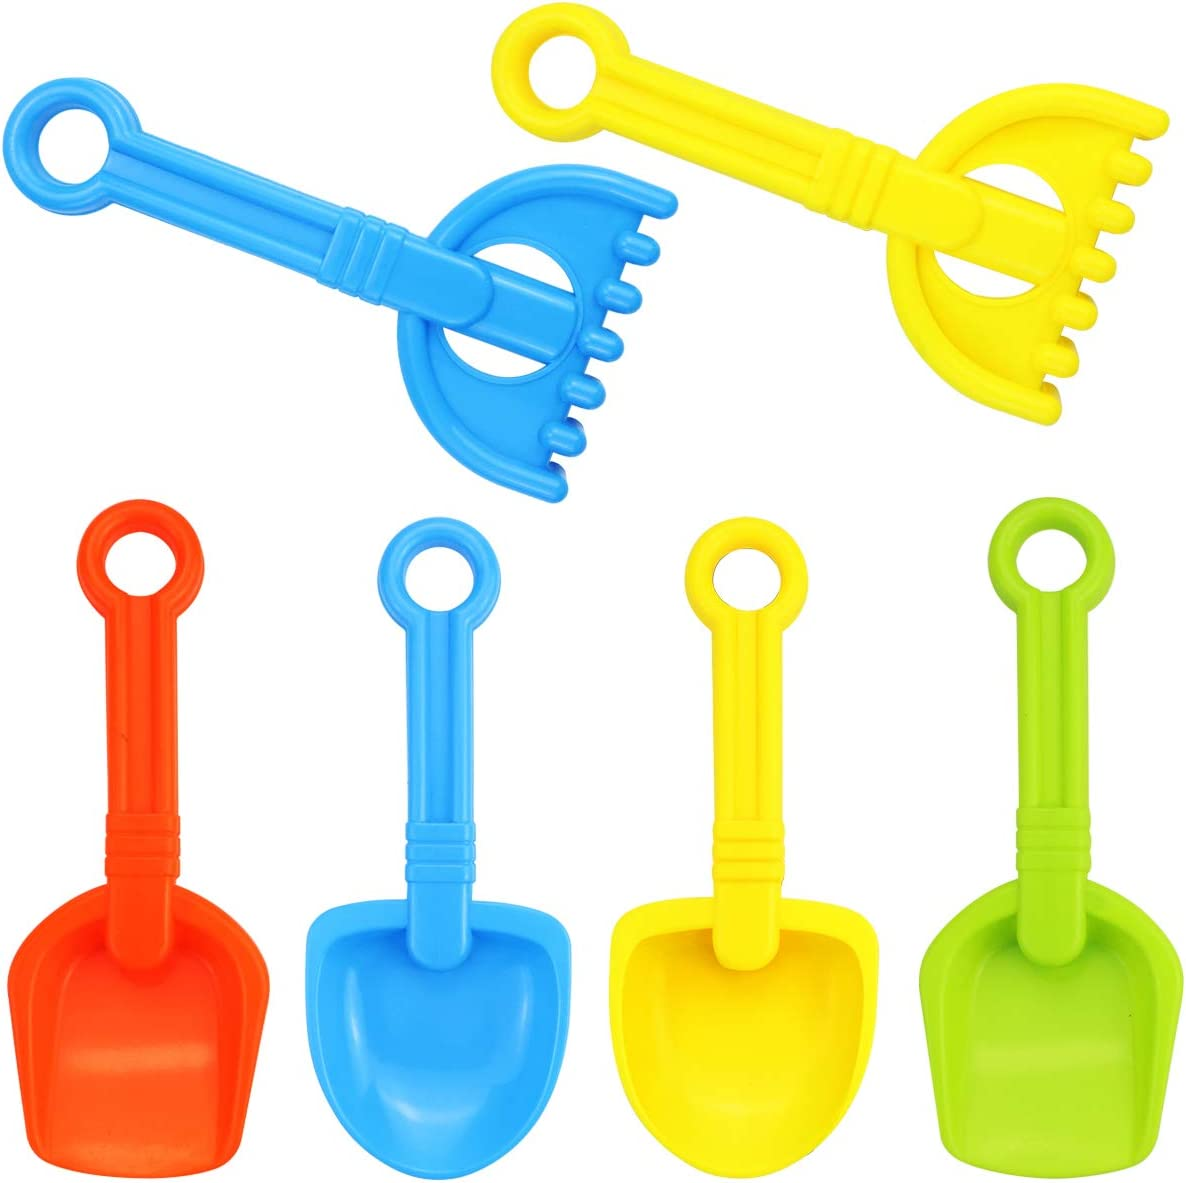 Faxco 6 Pack 9.5'' Colorful Toy Scoop Max 69% OFF Beach Plastic Max 75% OFF Rake Sco